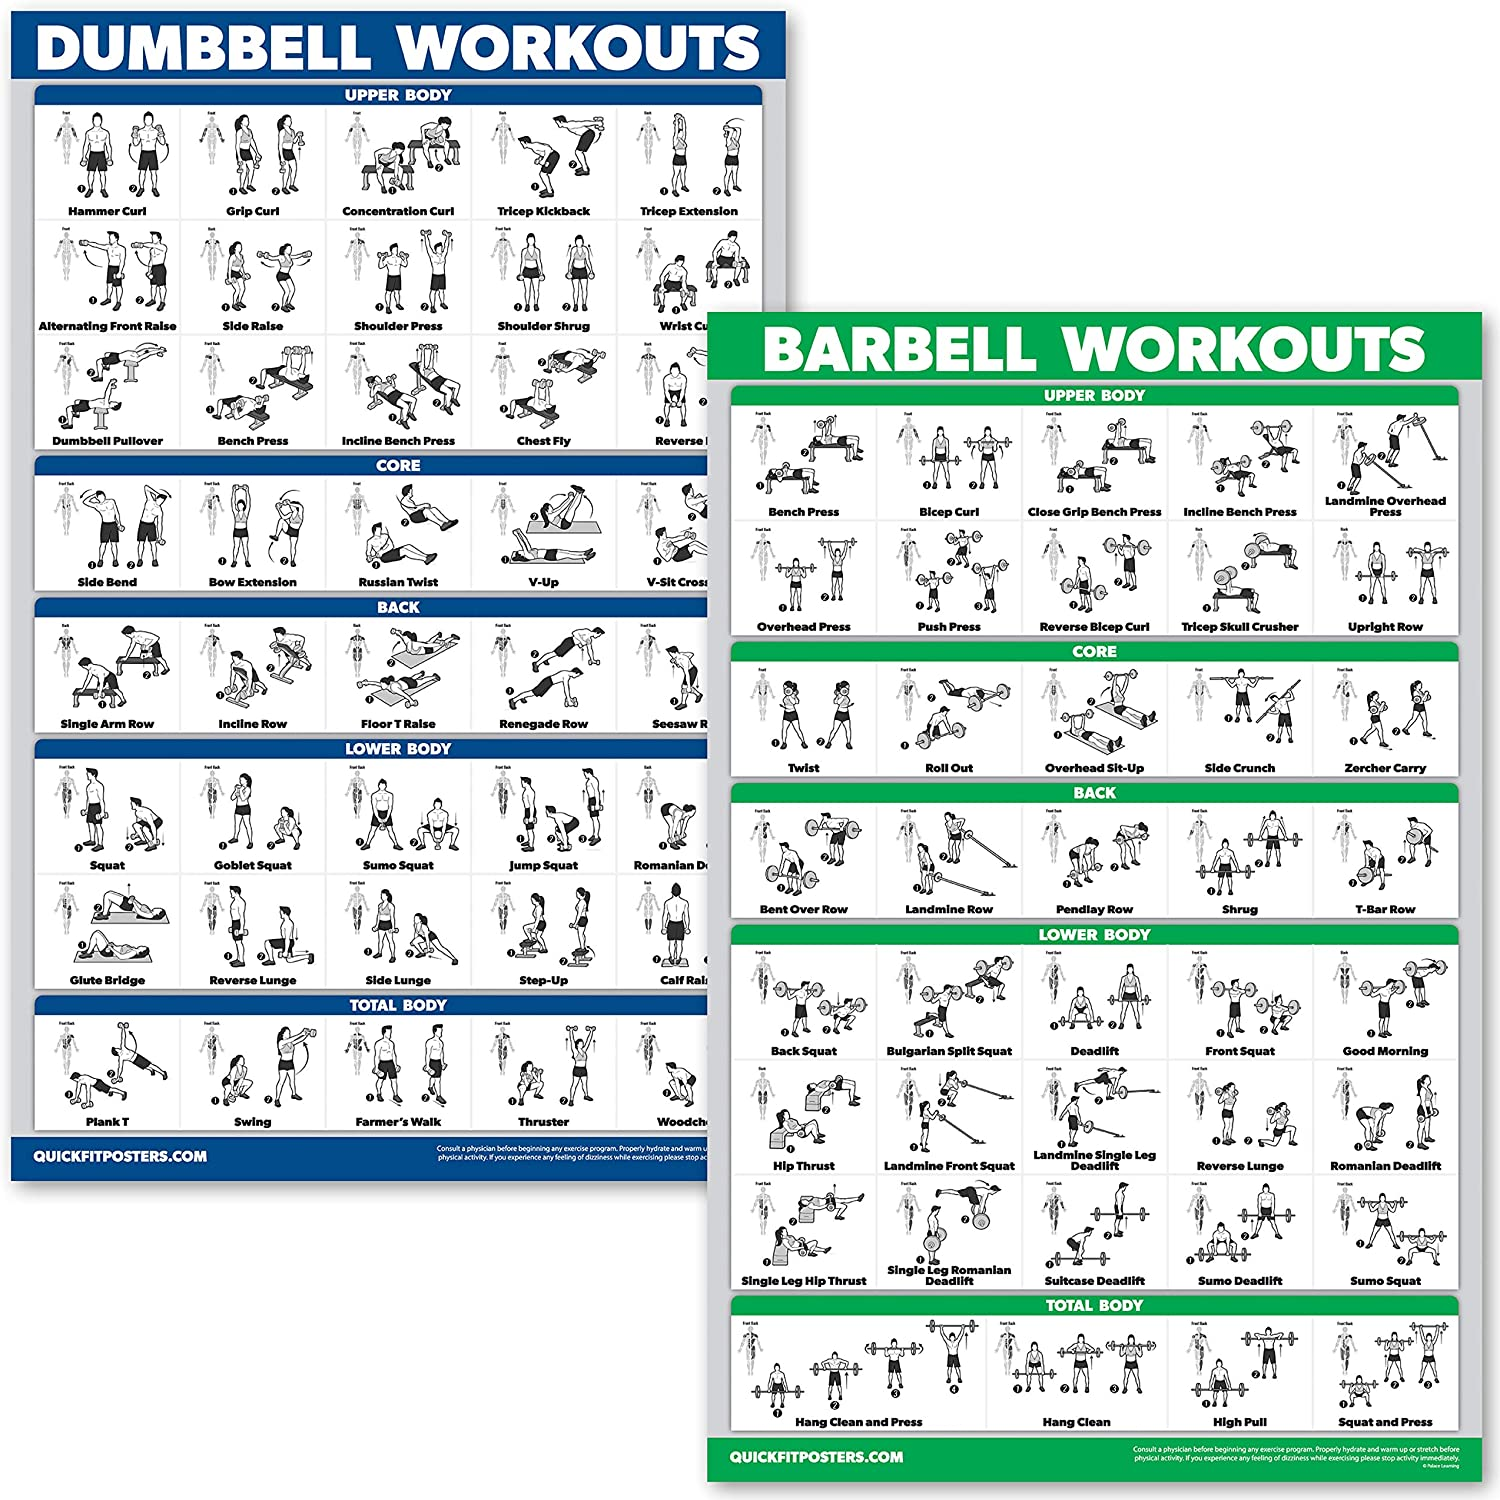 QuickFit Dumbbell Workouts and Barbell Exercise Poster Set - Laminated 2 Chart Set - Dumbbell Exercise Routine & Barbell Workouts